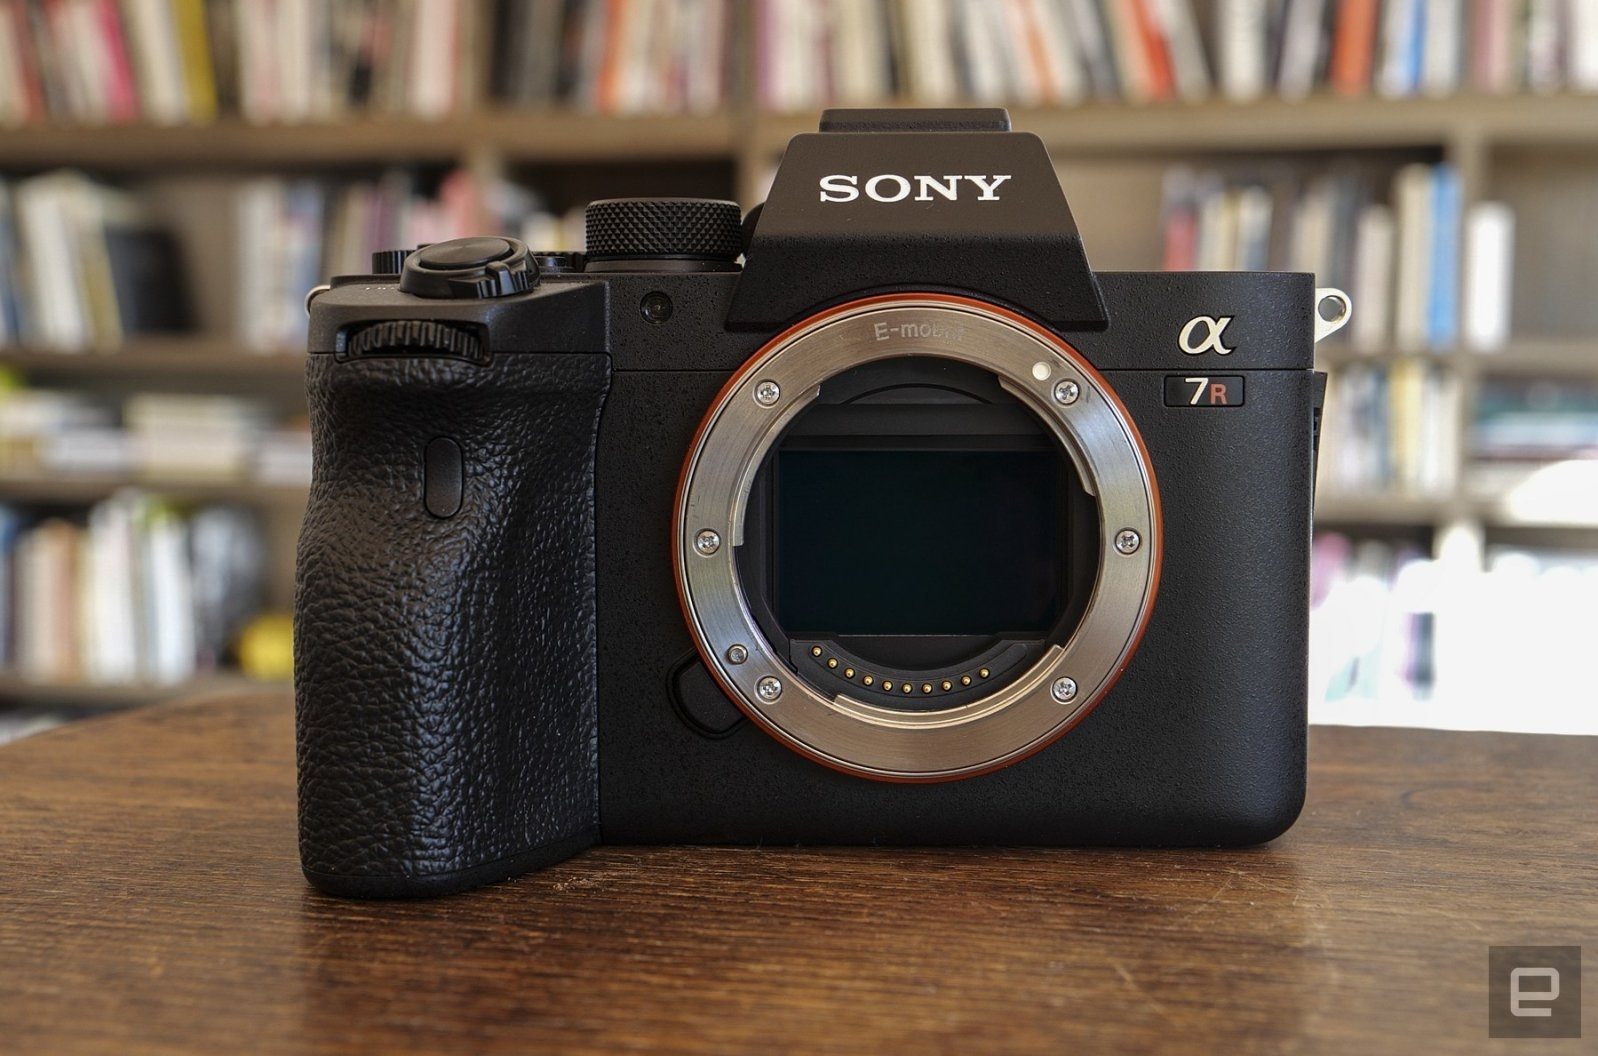 Sony A7R IV review: 61 megapixels of pure camera power | DeviceDaily.com